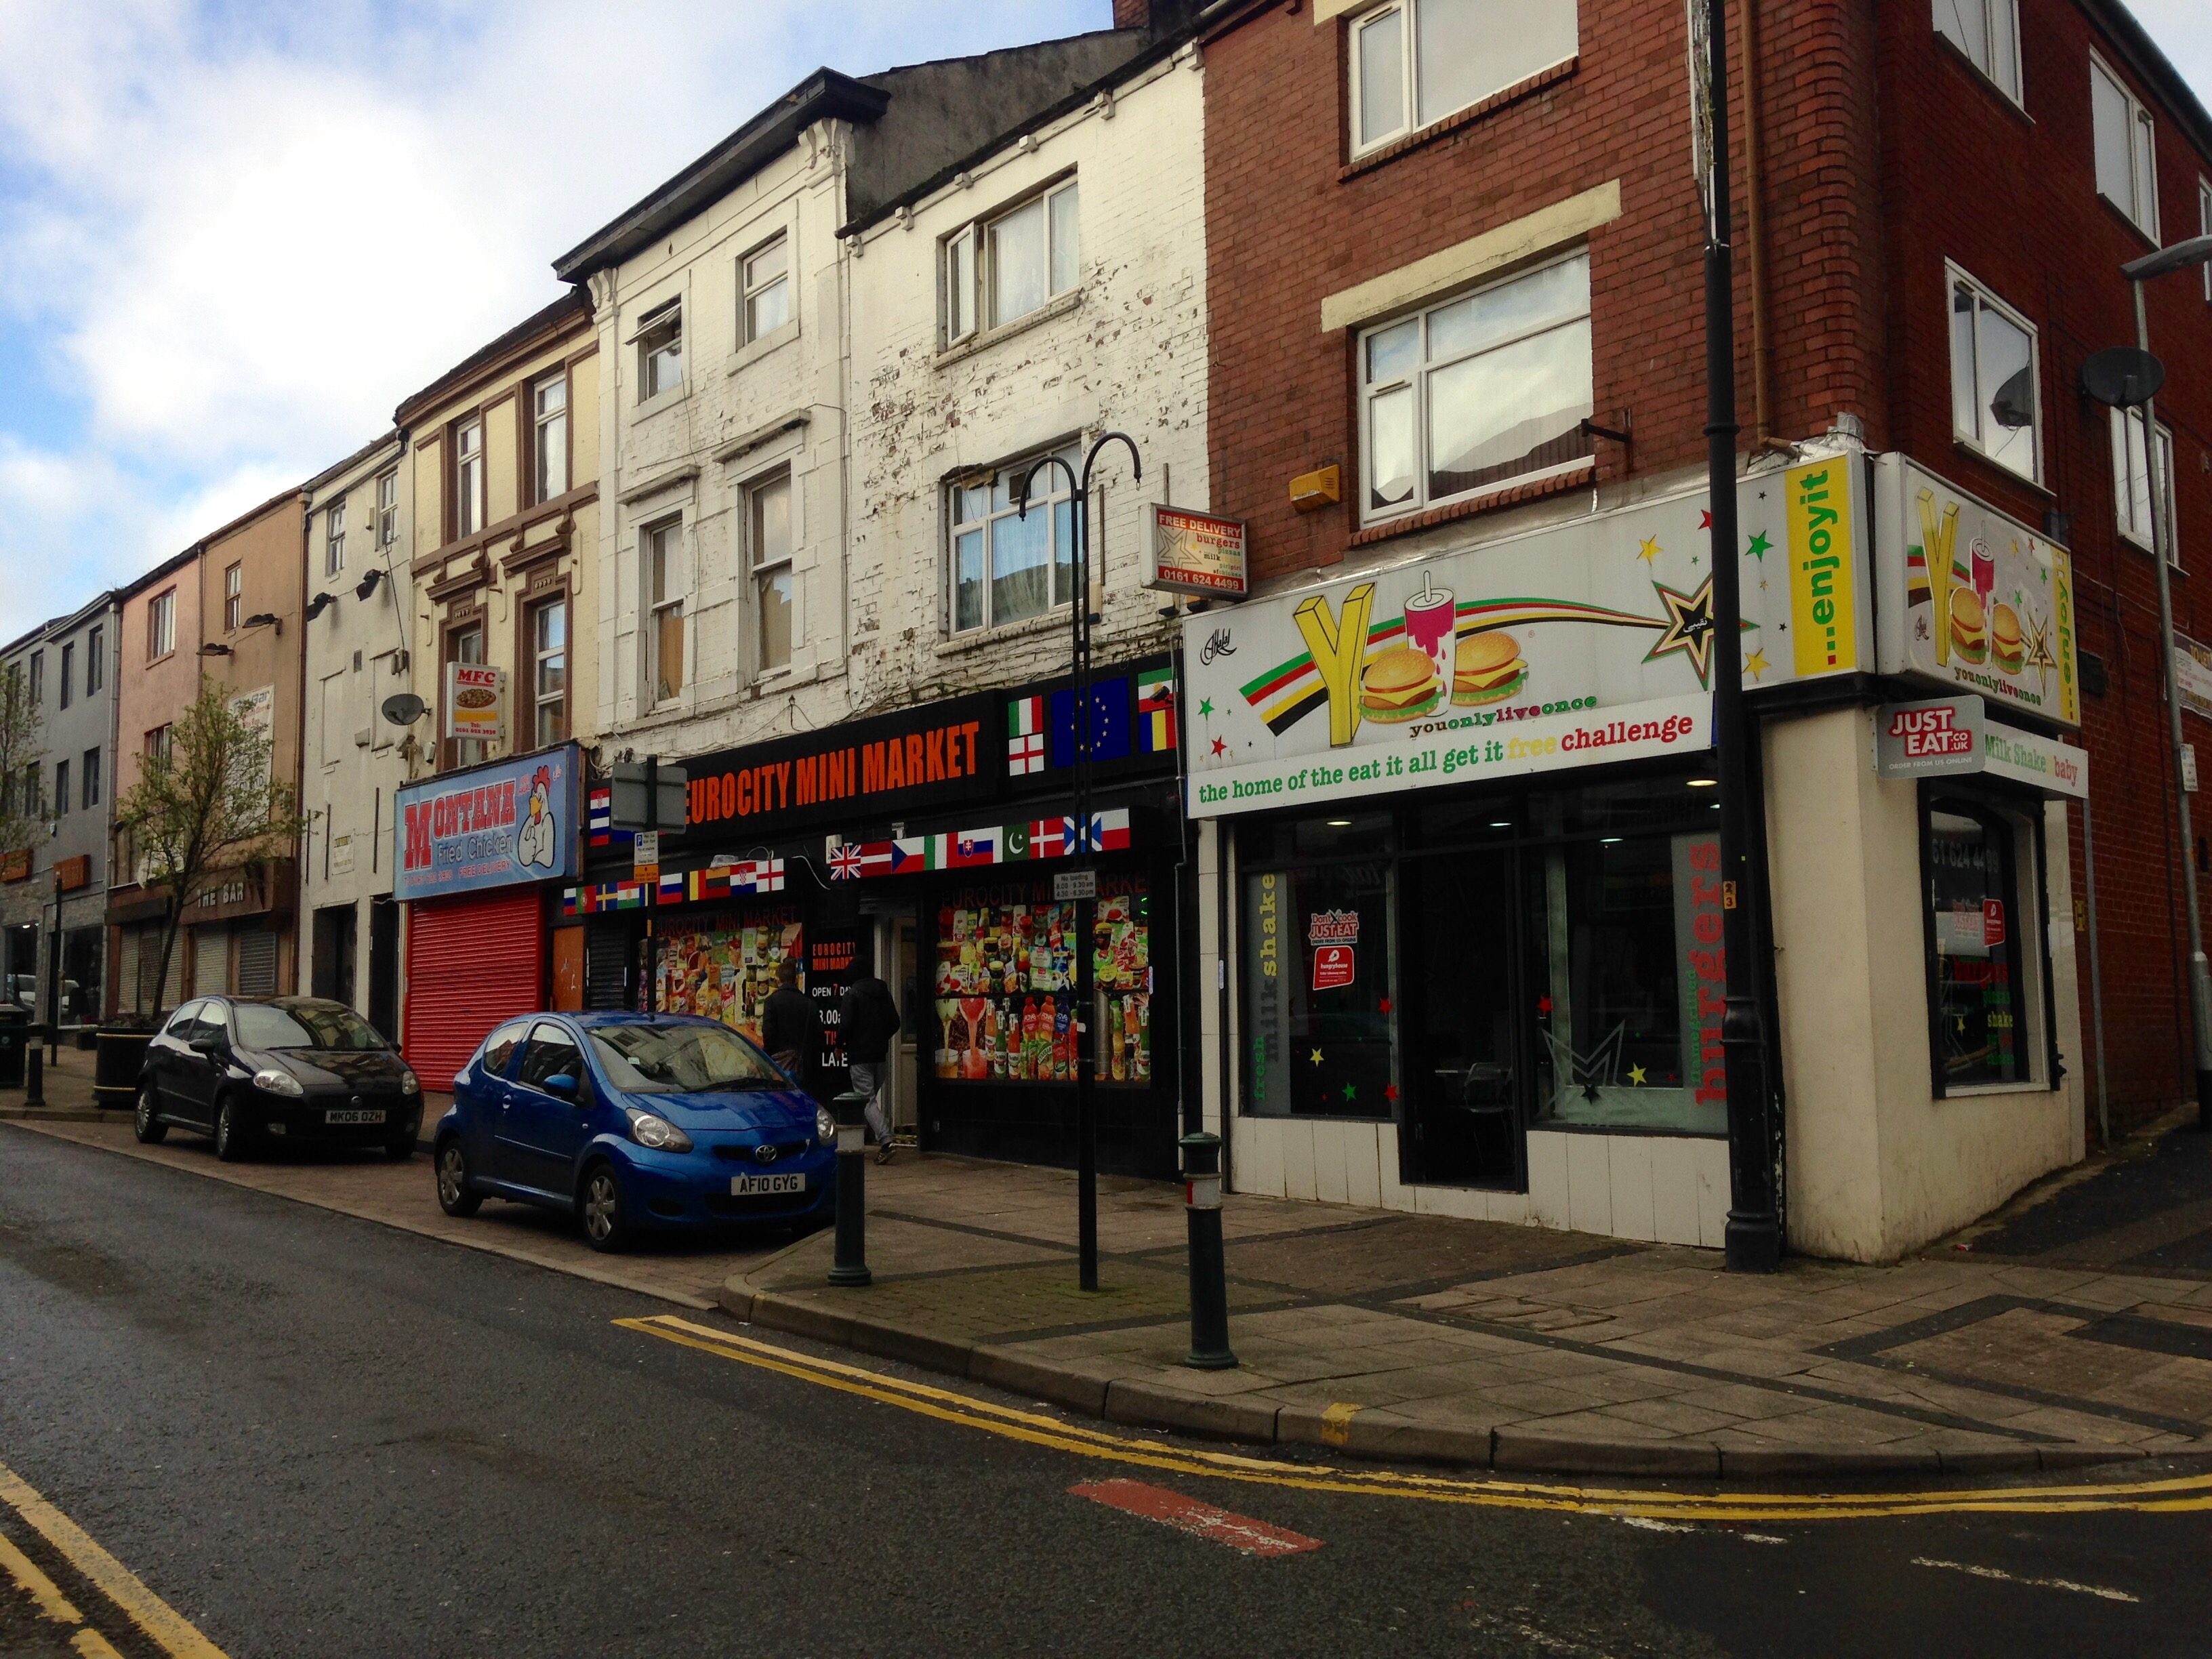 Oldham Near The Bottom When It Comes To Racial Integration